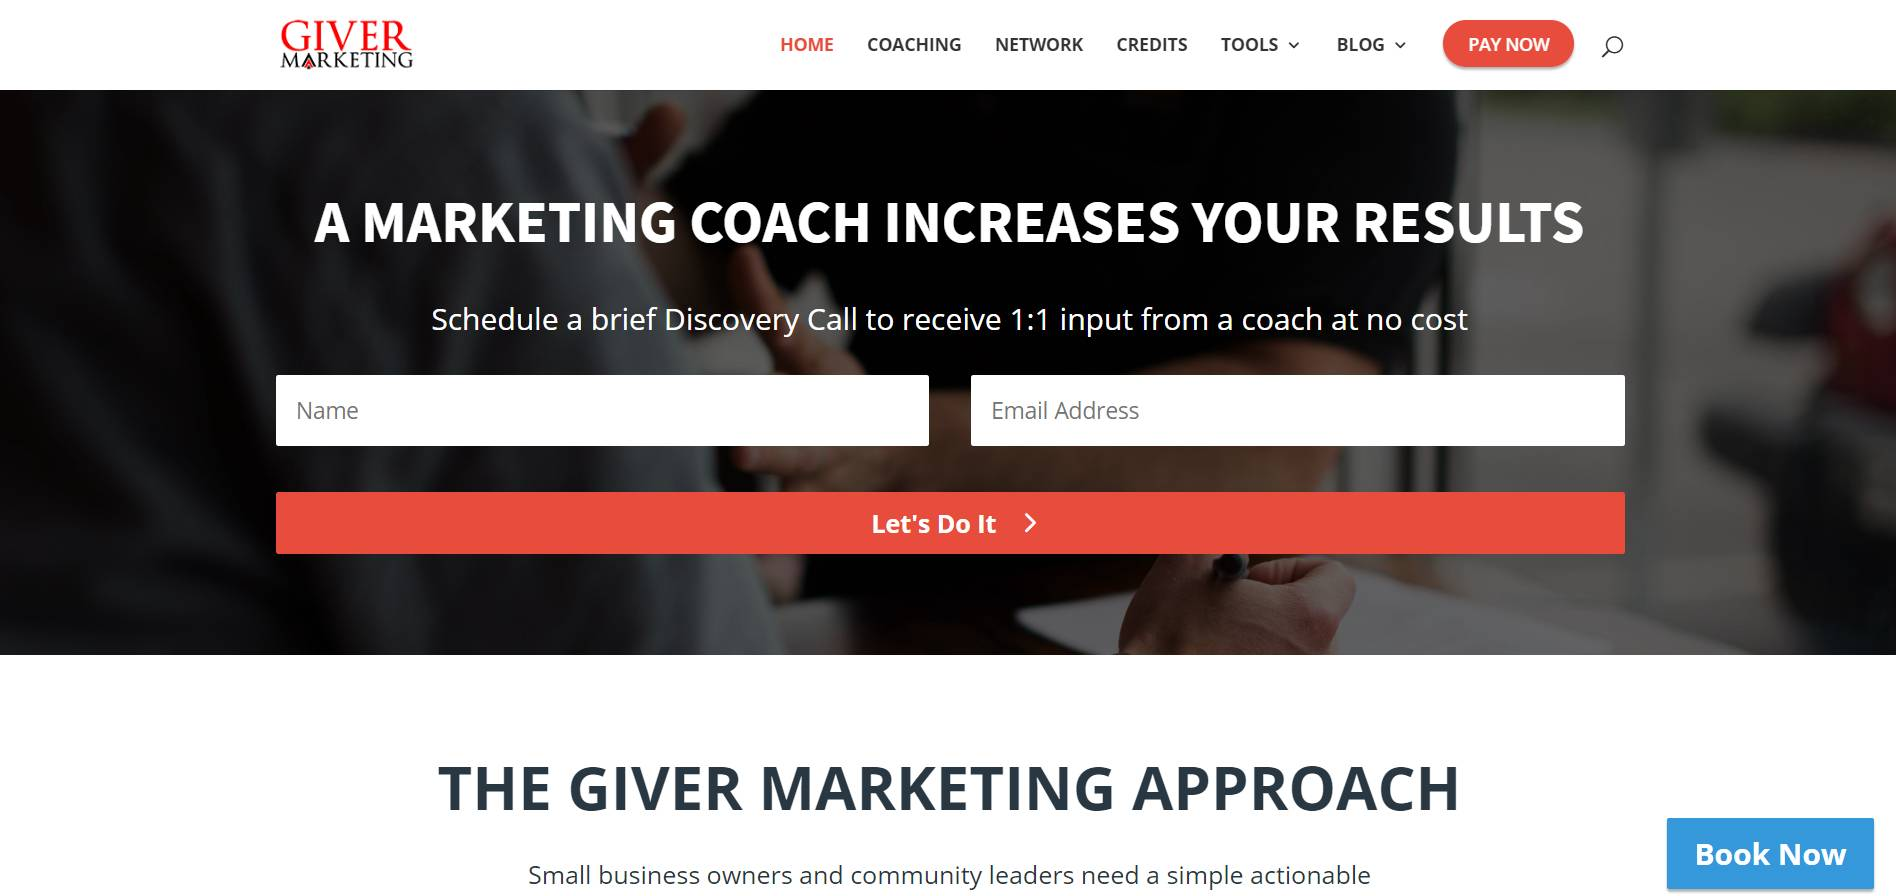 Giver Marketing